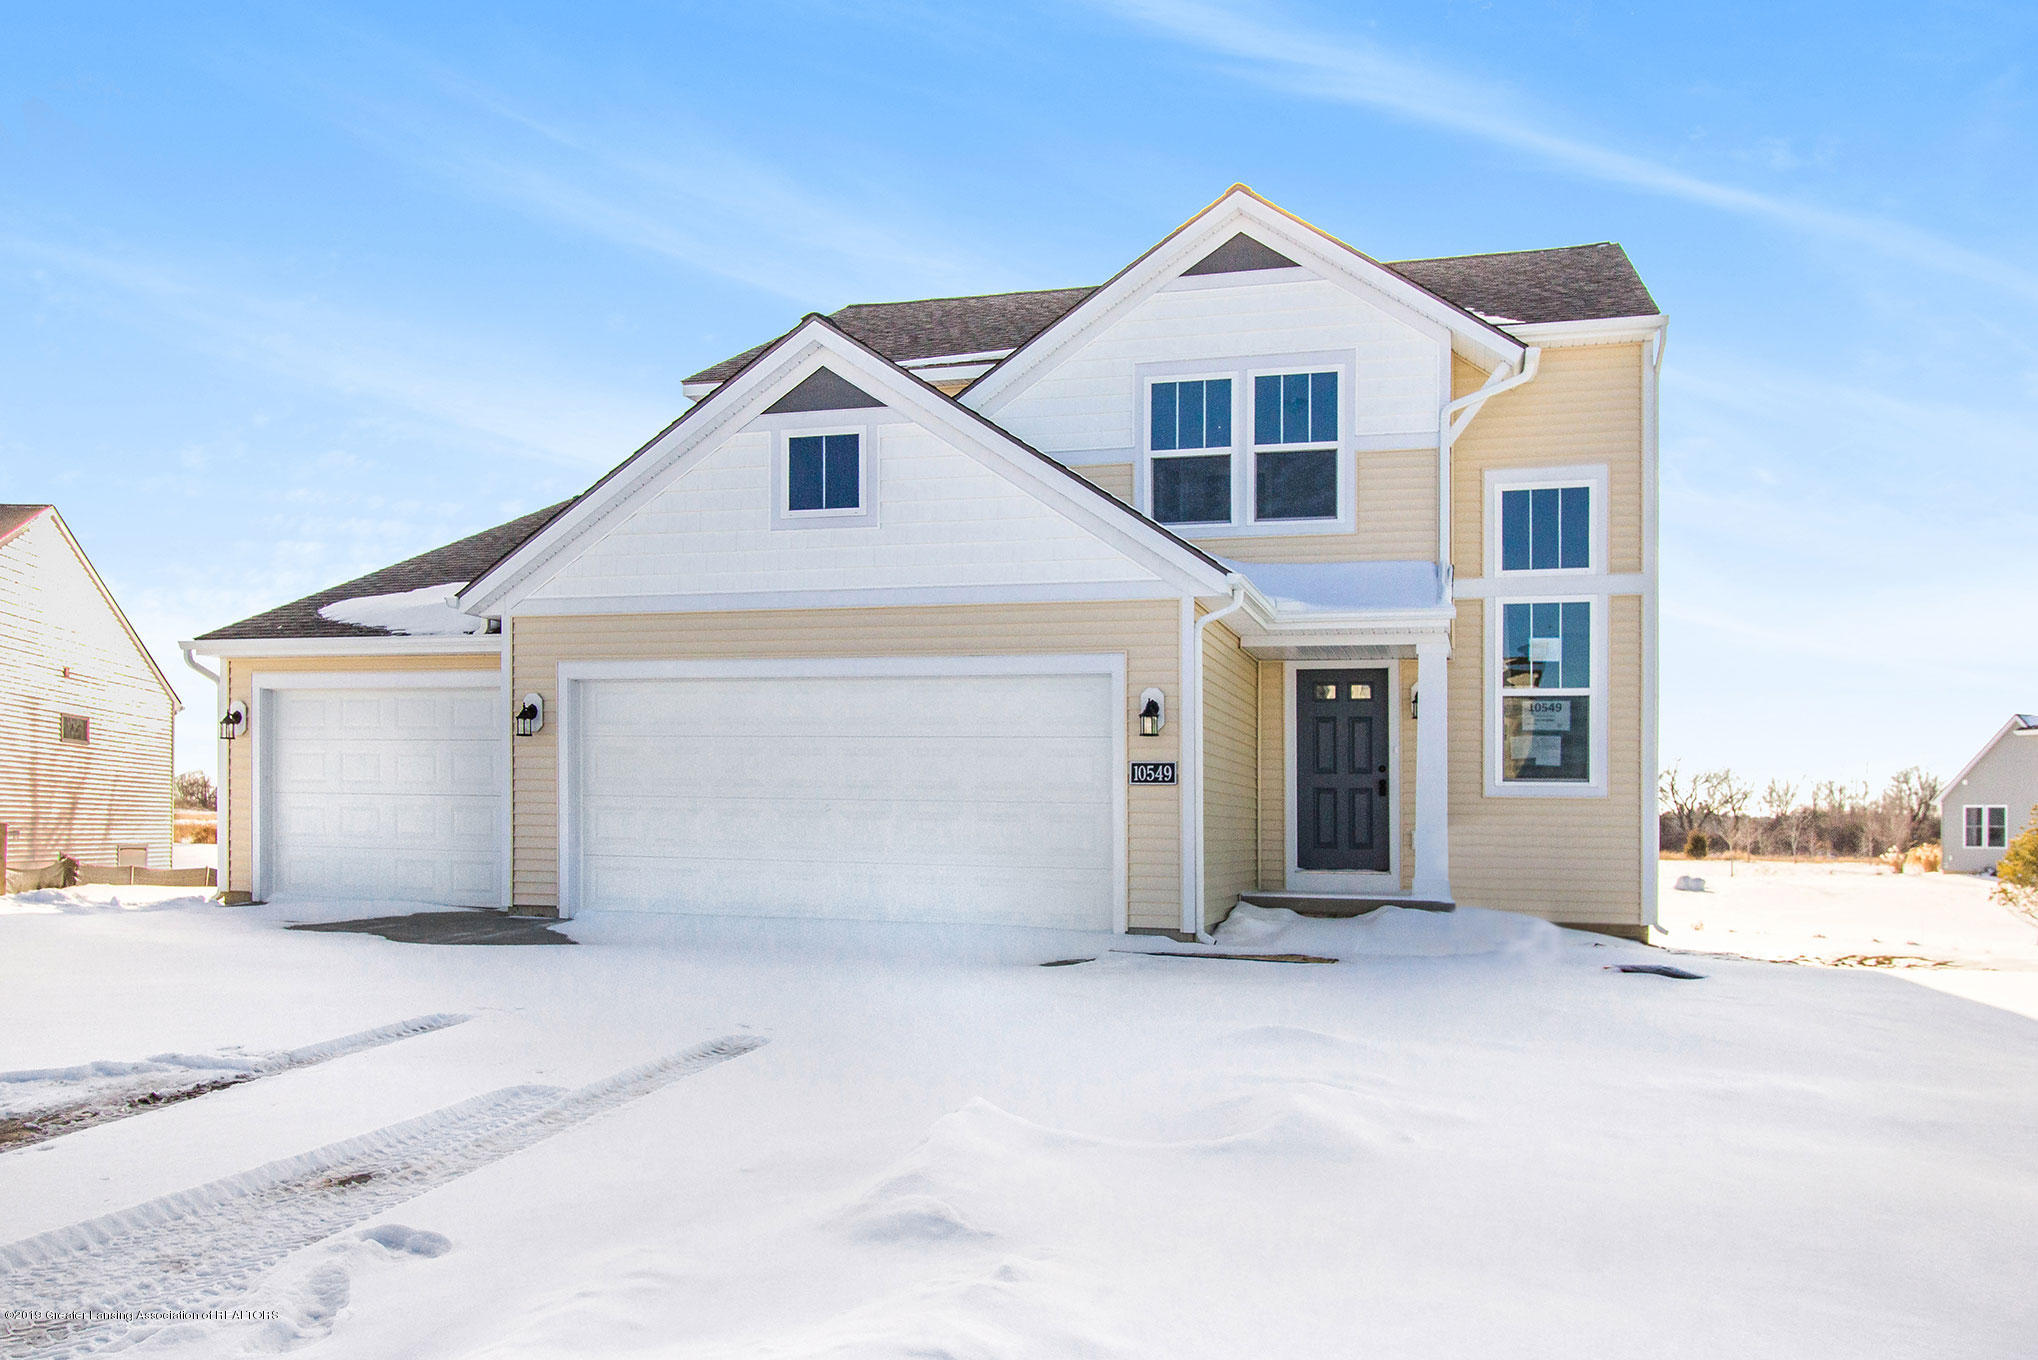 10549 Saddlebrook Dr - 10549 Saddlebrook Drive Grand Ledge, MI - 4